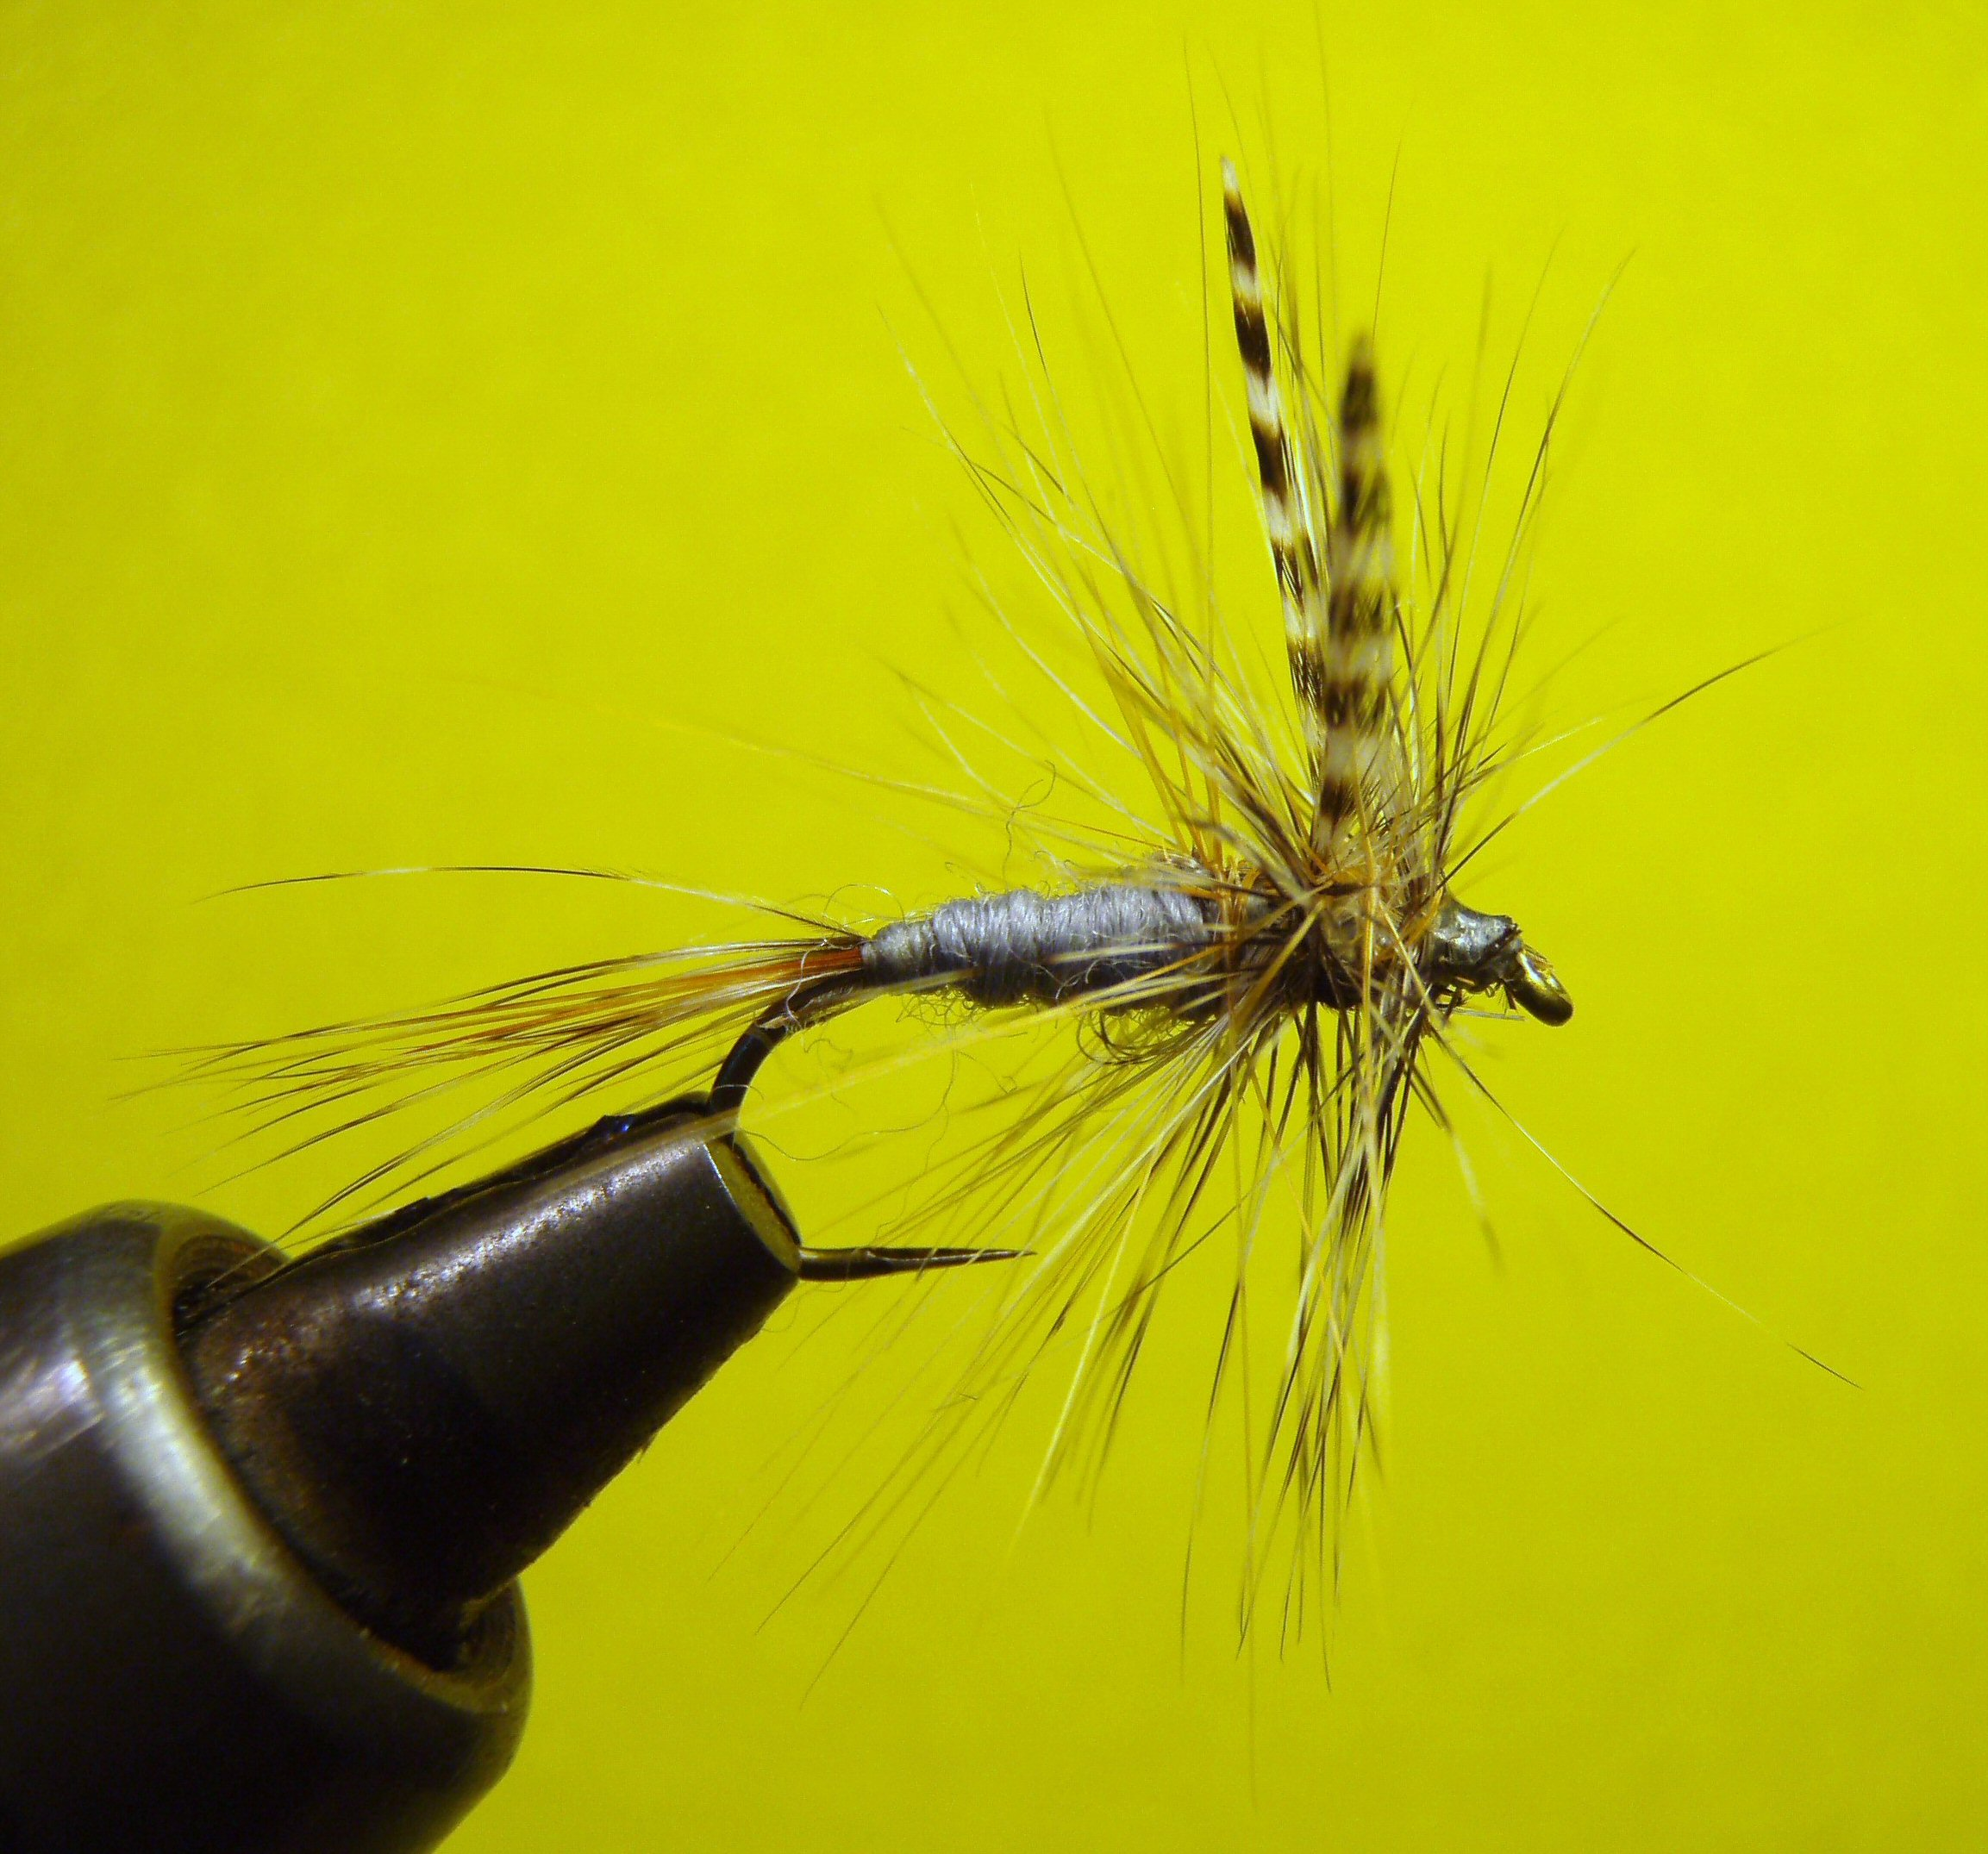 An Adams fly in a vice.